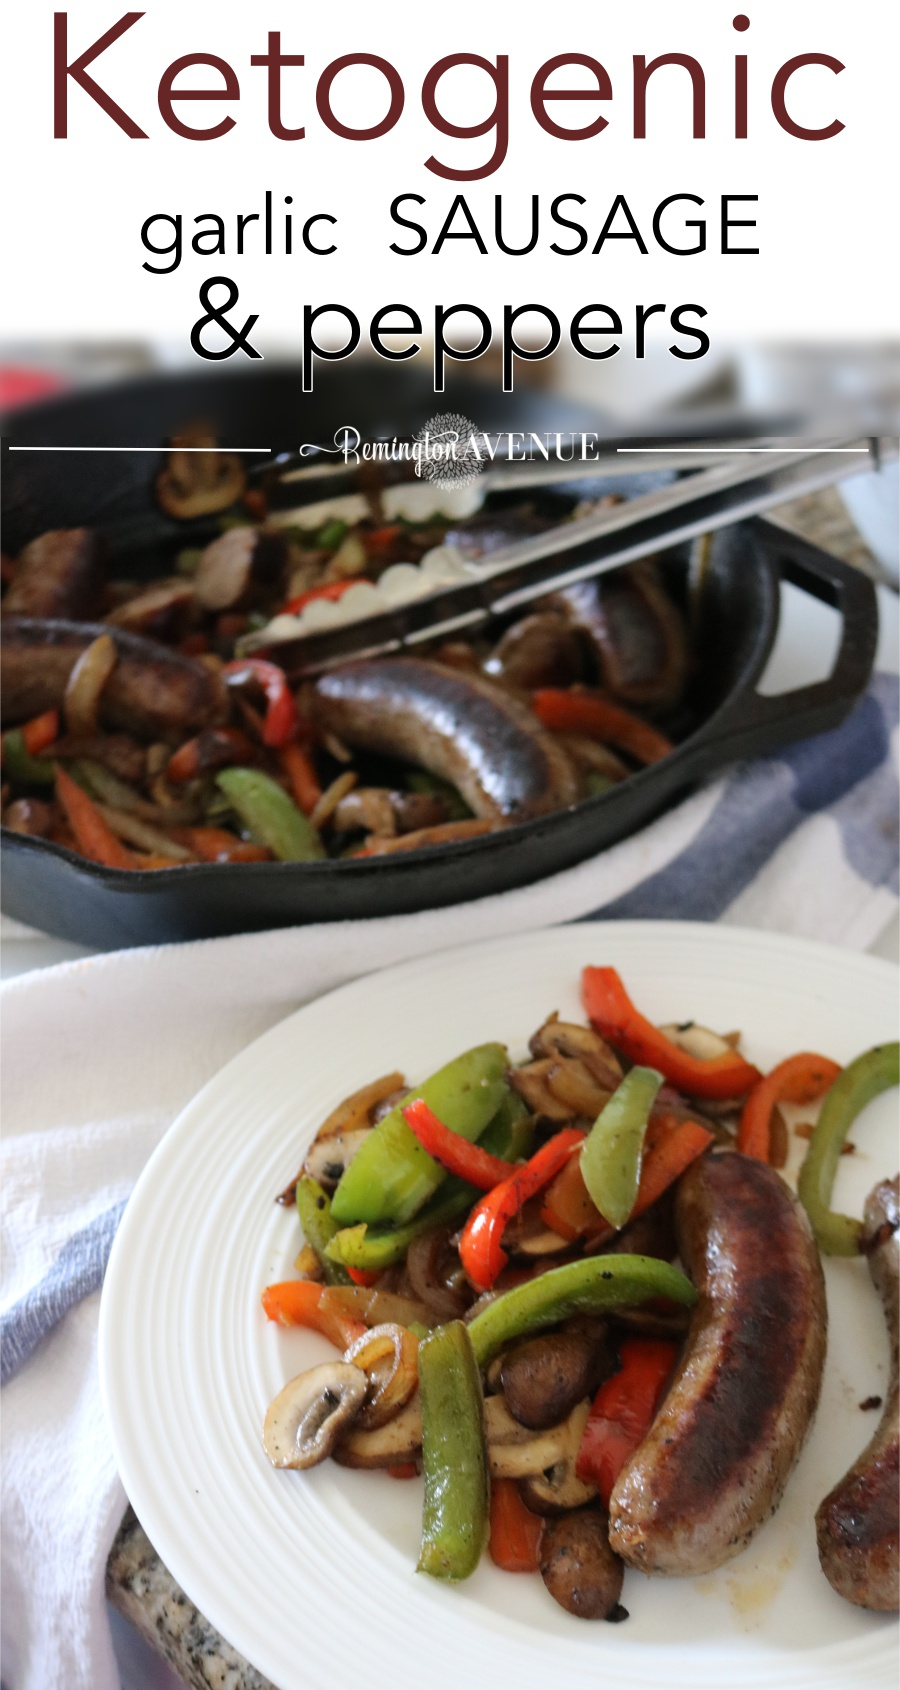 Summer keto bbq recipe- sausage and peppers